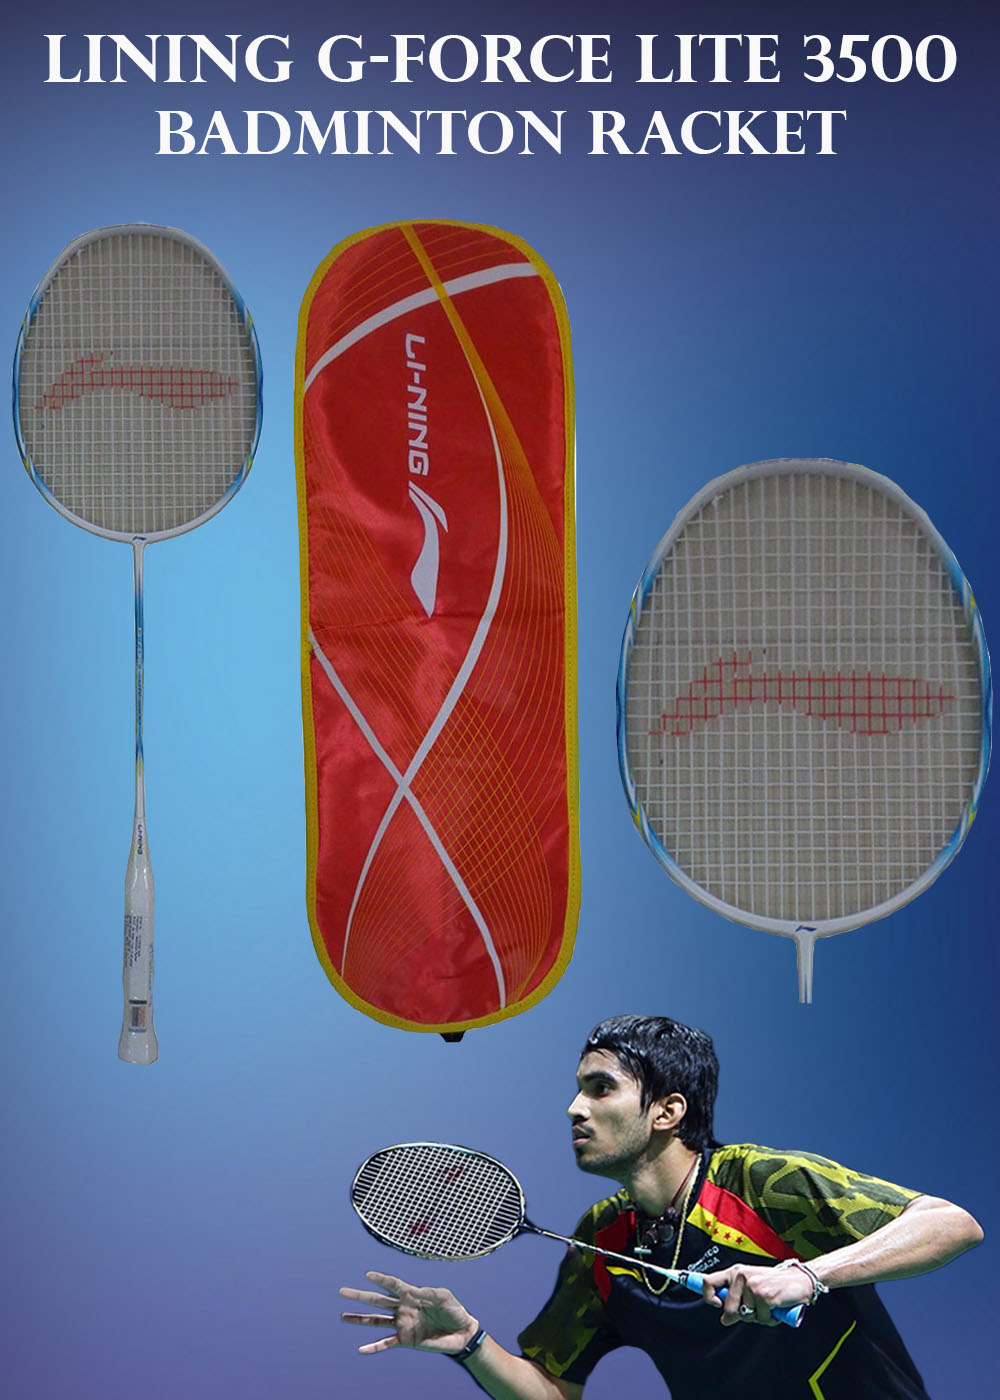 Li Ning G Force Lite 3500 Badminton Racket